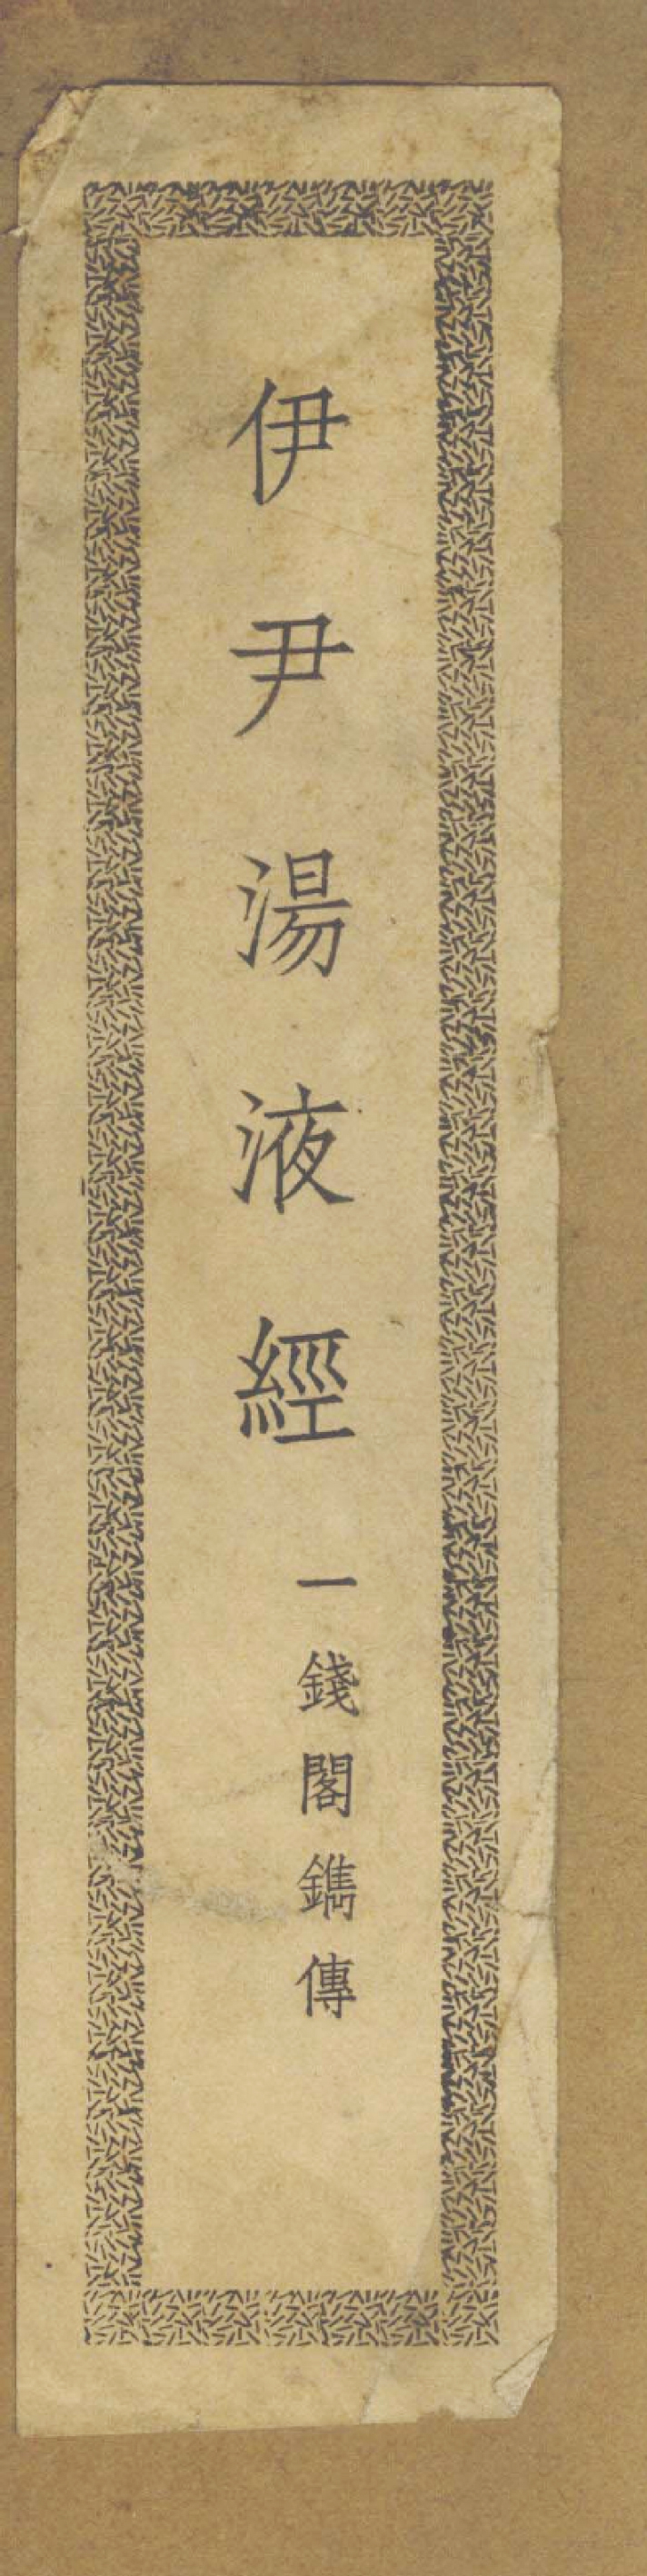 The title printed on the front cover, i.e. Yi Yin Tang Ye Jing 伊尹湯液經 (Yi Yin's Classic of Decoction). Below the title are the five characters 'Yi Qian Ge Juan Zhuan 一錢閣鐫傳' (Engraved and Issued by the One-Coin Pavilion).